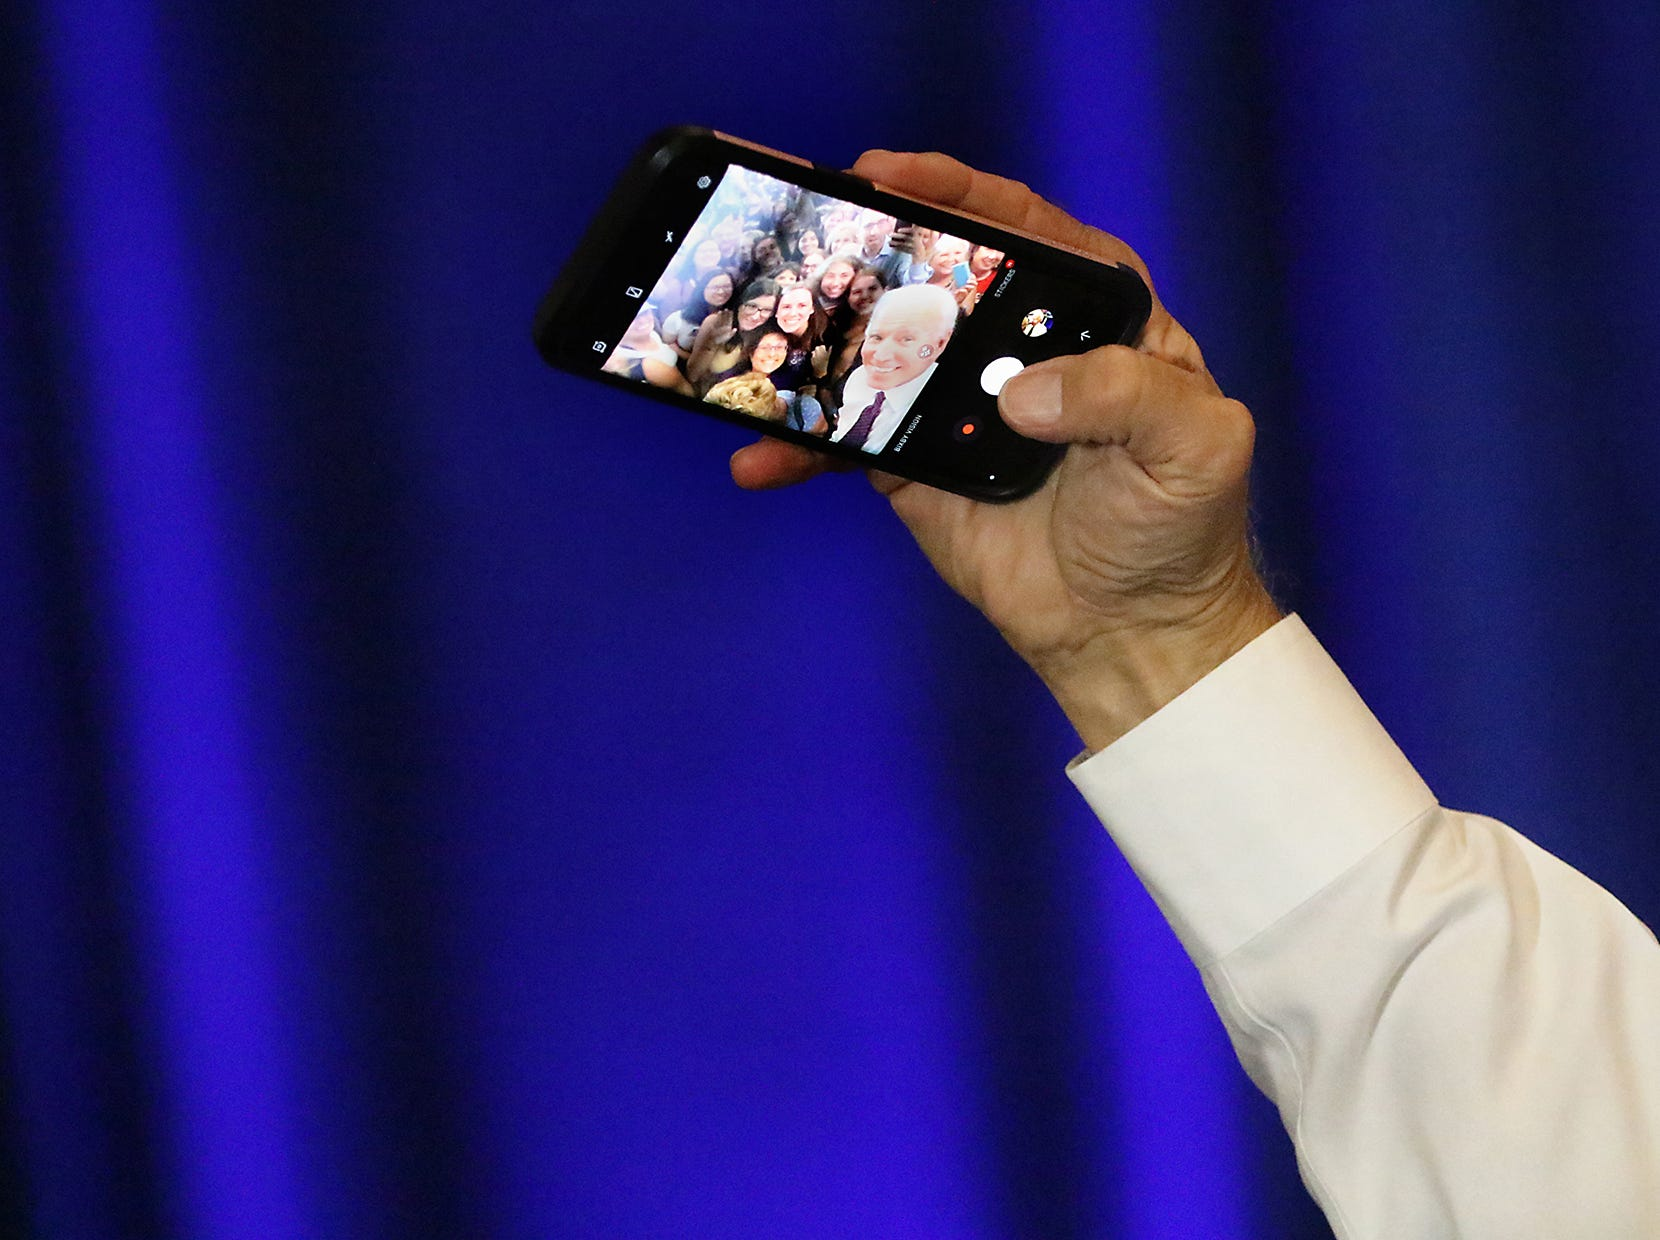 Joe Biden holds a supporters phone as he takes a selfie at Montclair State University. Wednesday, September 5, 2018